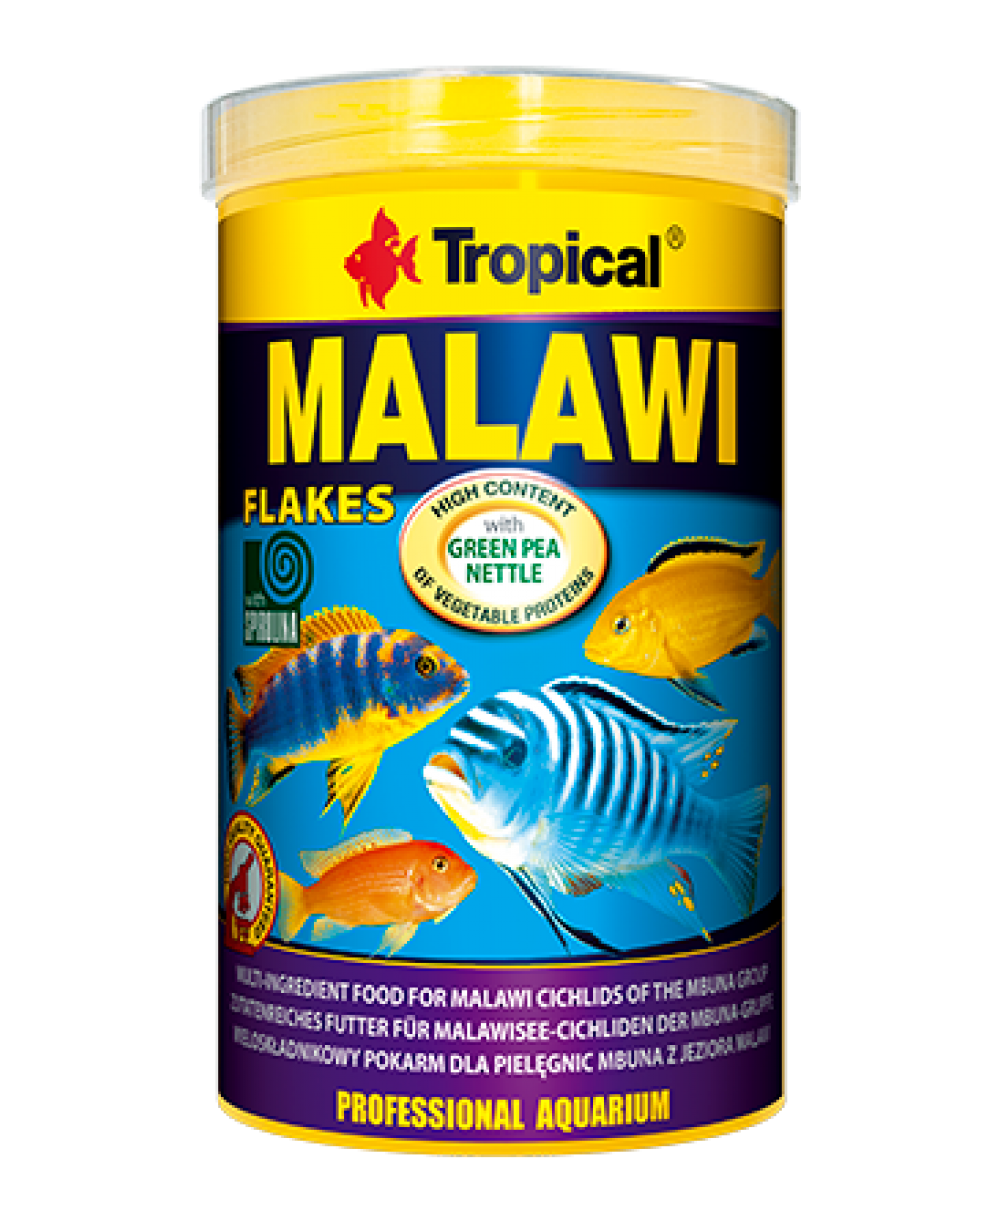 Tropical malawi flakes comida para peces malawi tropican for Comida para peces